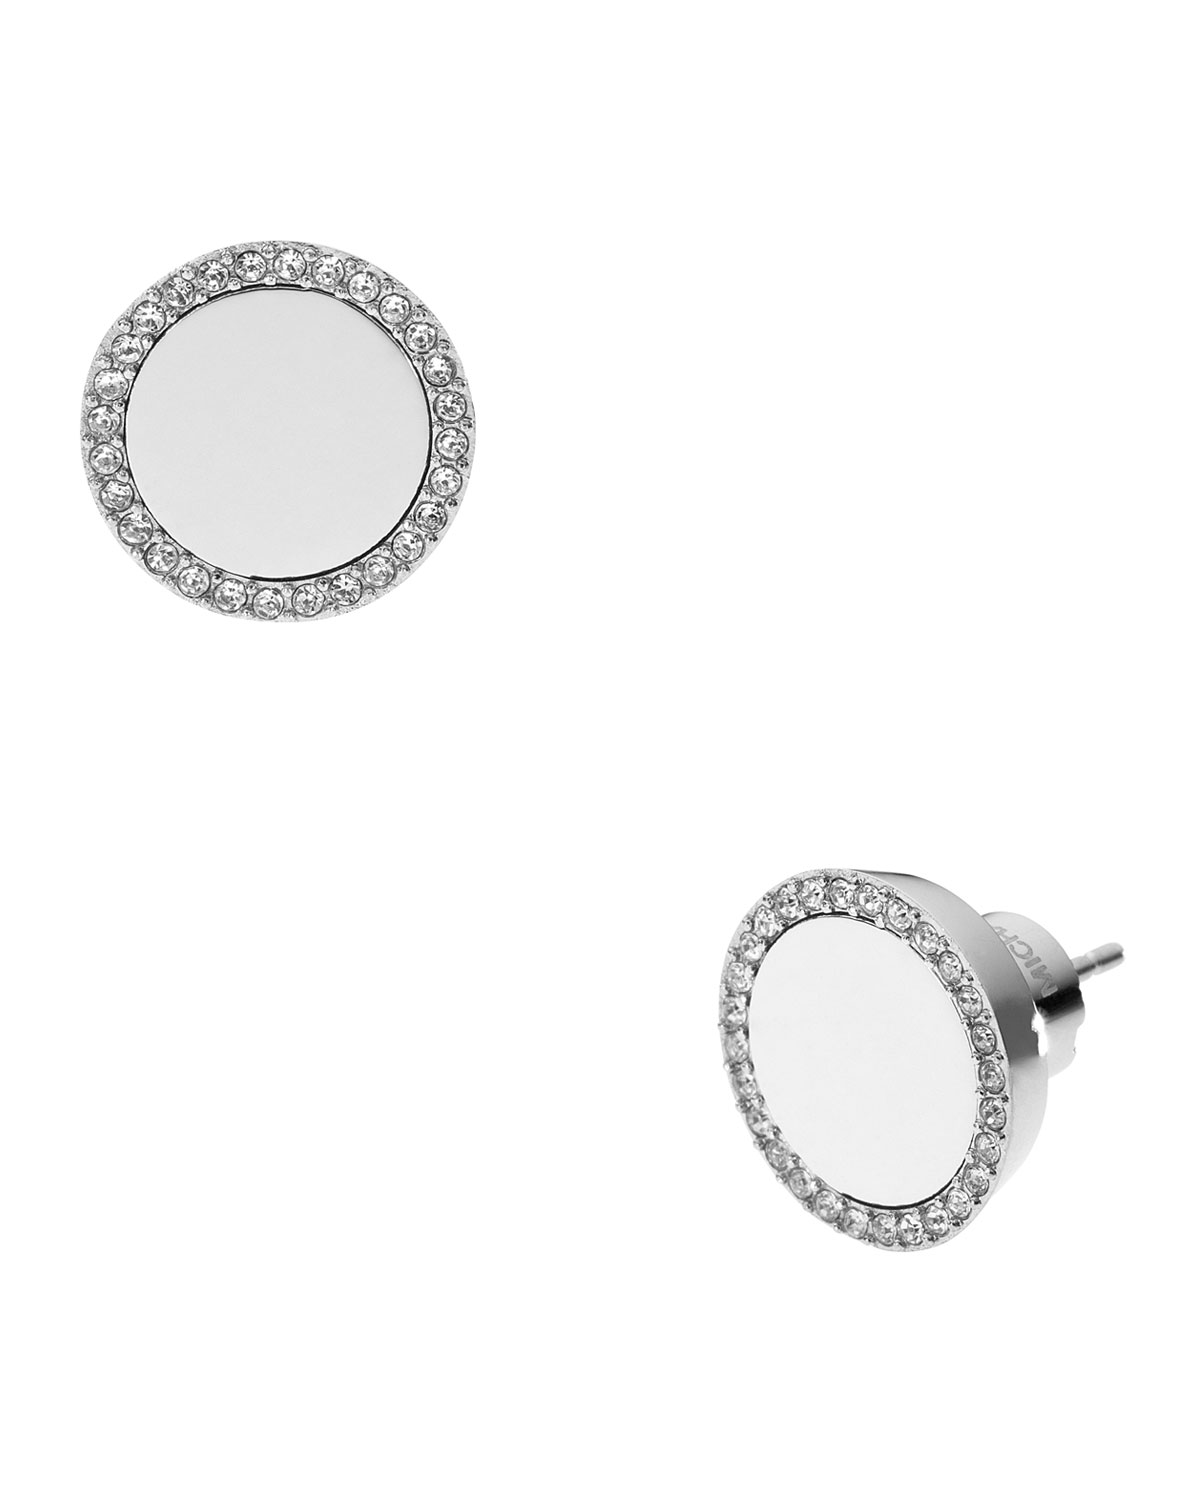 115a9a1e6 Michael Kors Silver Tone Logo Pave Stud Earrings - The Best Produck ...